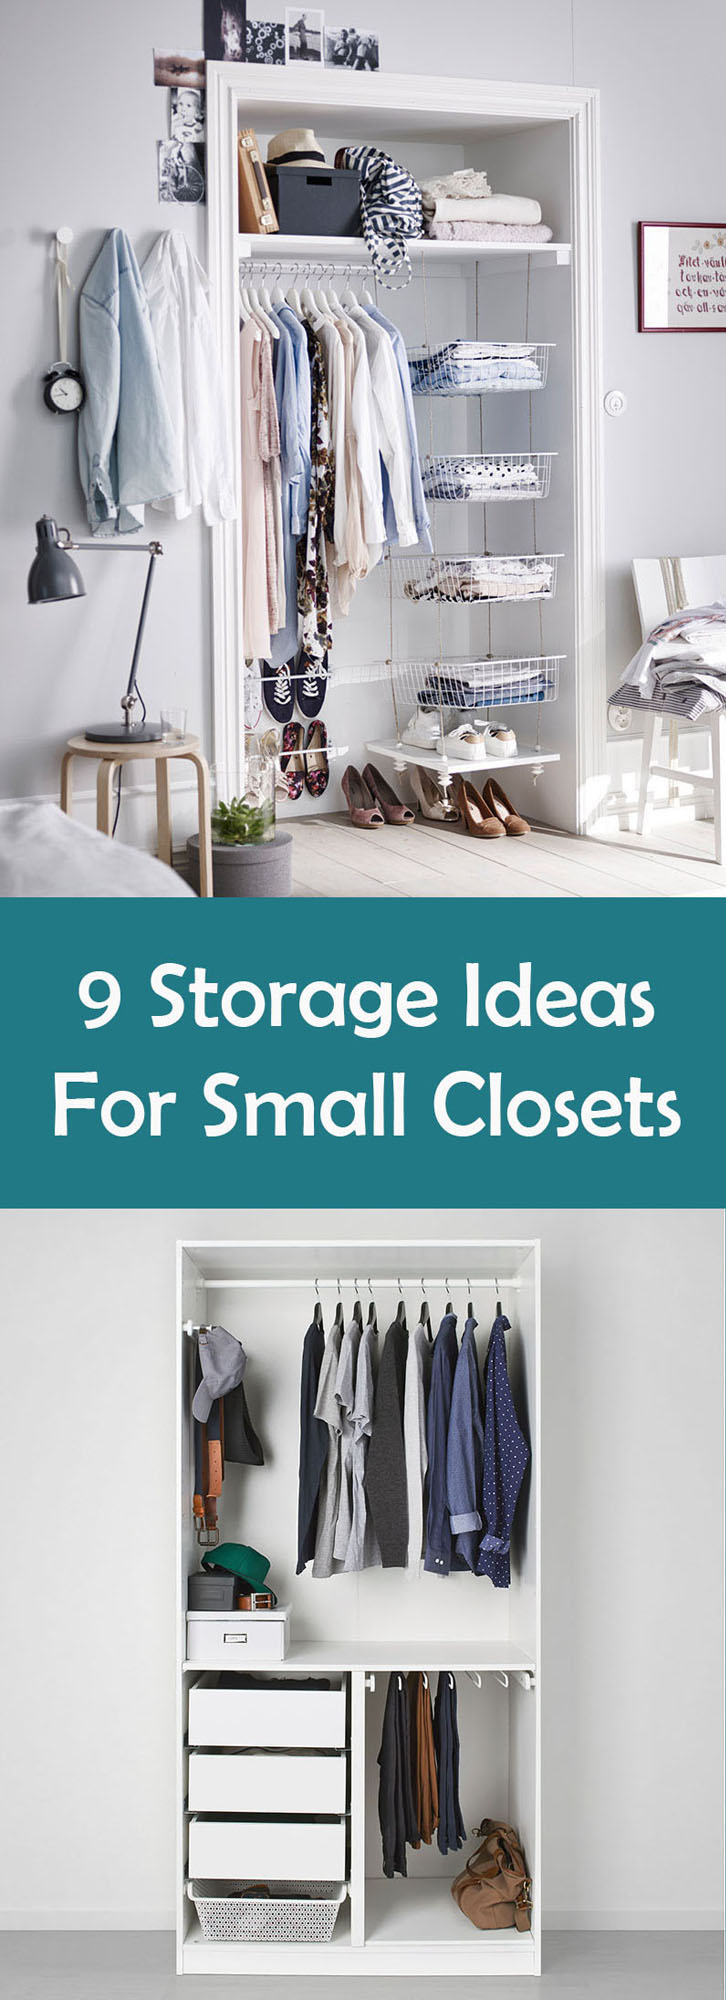 9 Storage Ideas For Small Closets Contemporist